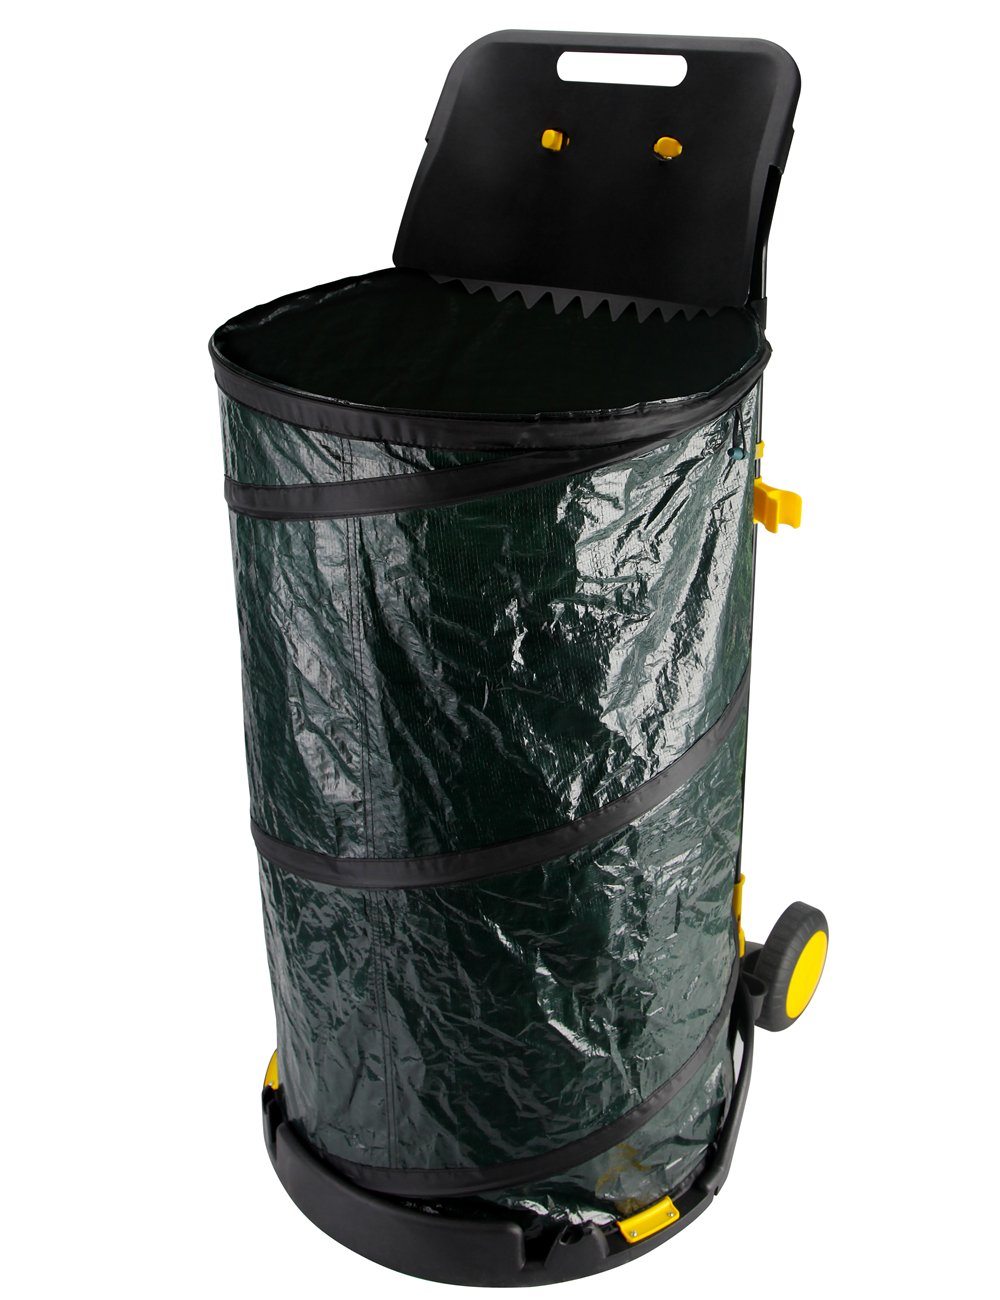 Get Quotations Maius Leaf Bag Pop Up Lawn With One Scoop Reusable Collapsible Garden